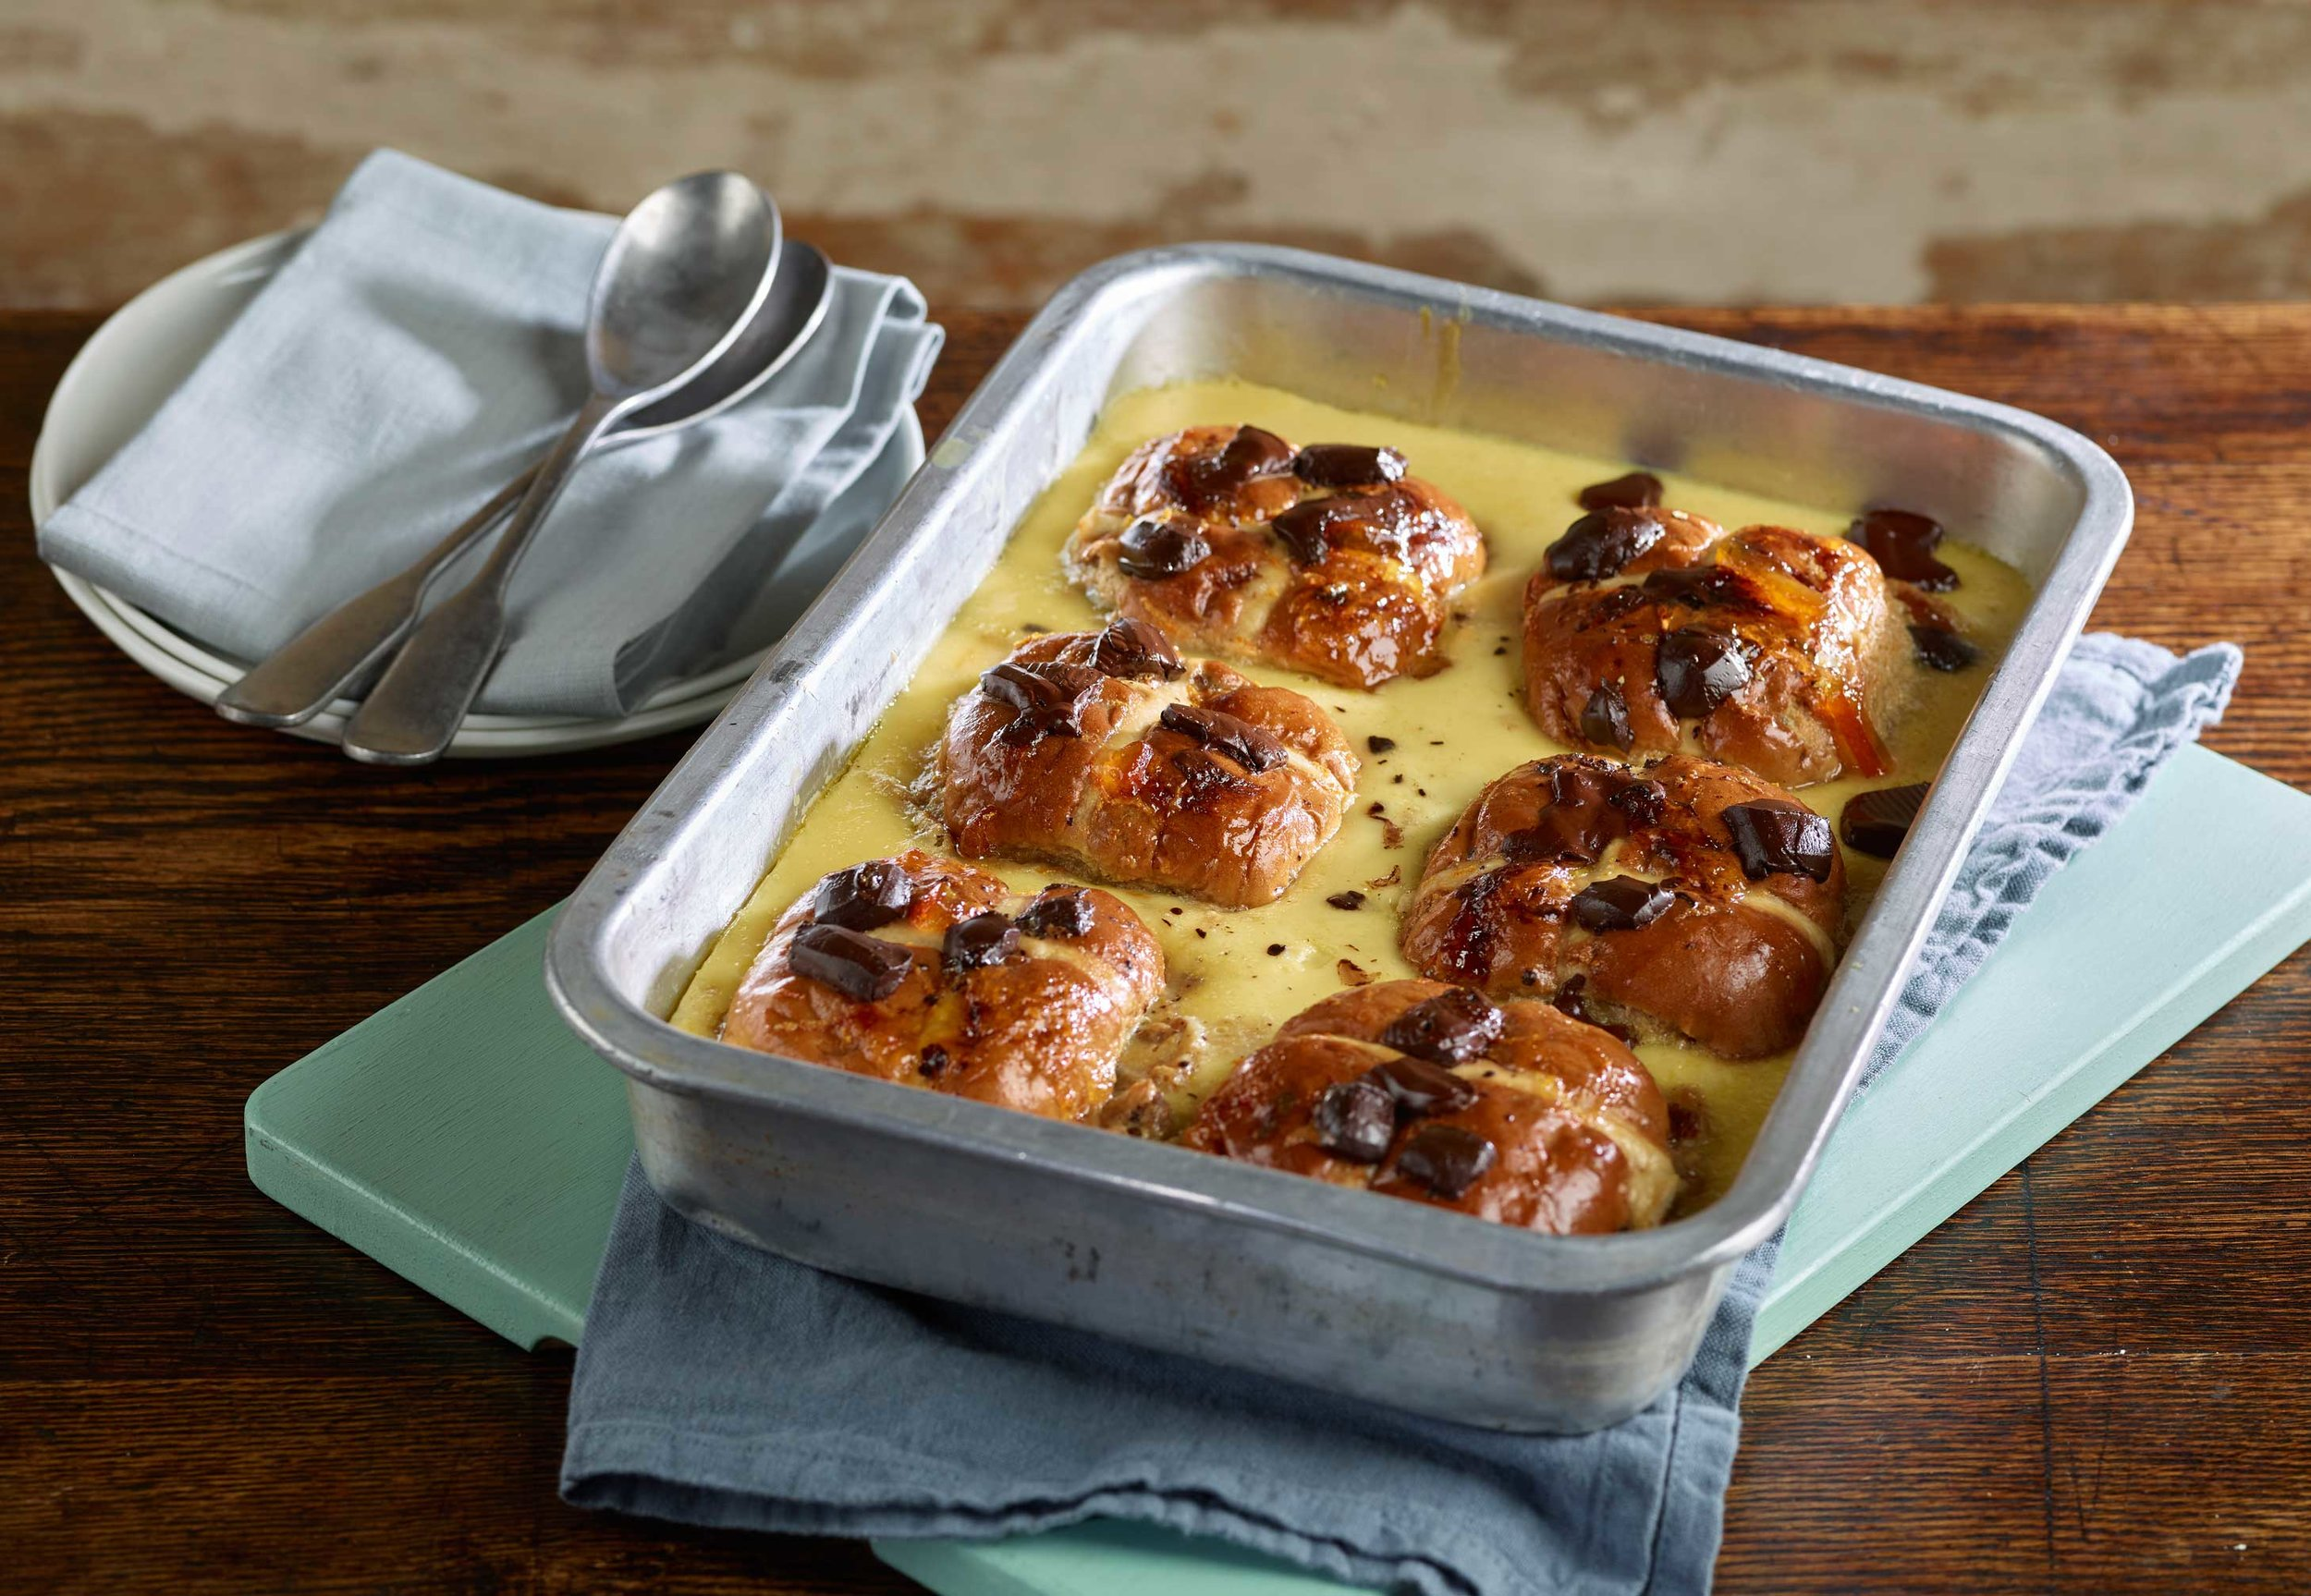 Bread-and-Butter-Pudding-Landscape.jpg